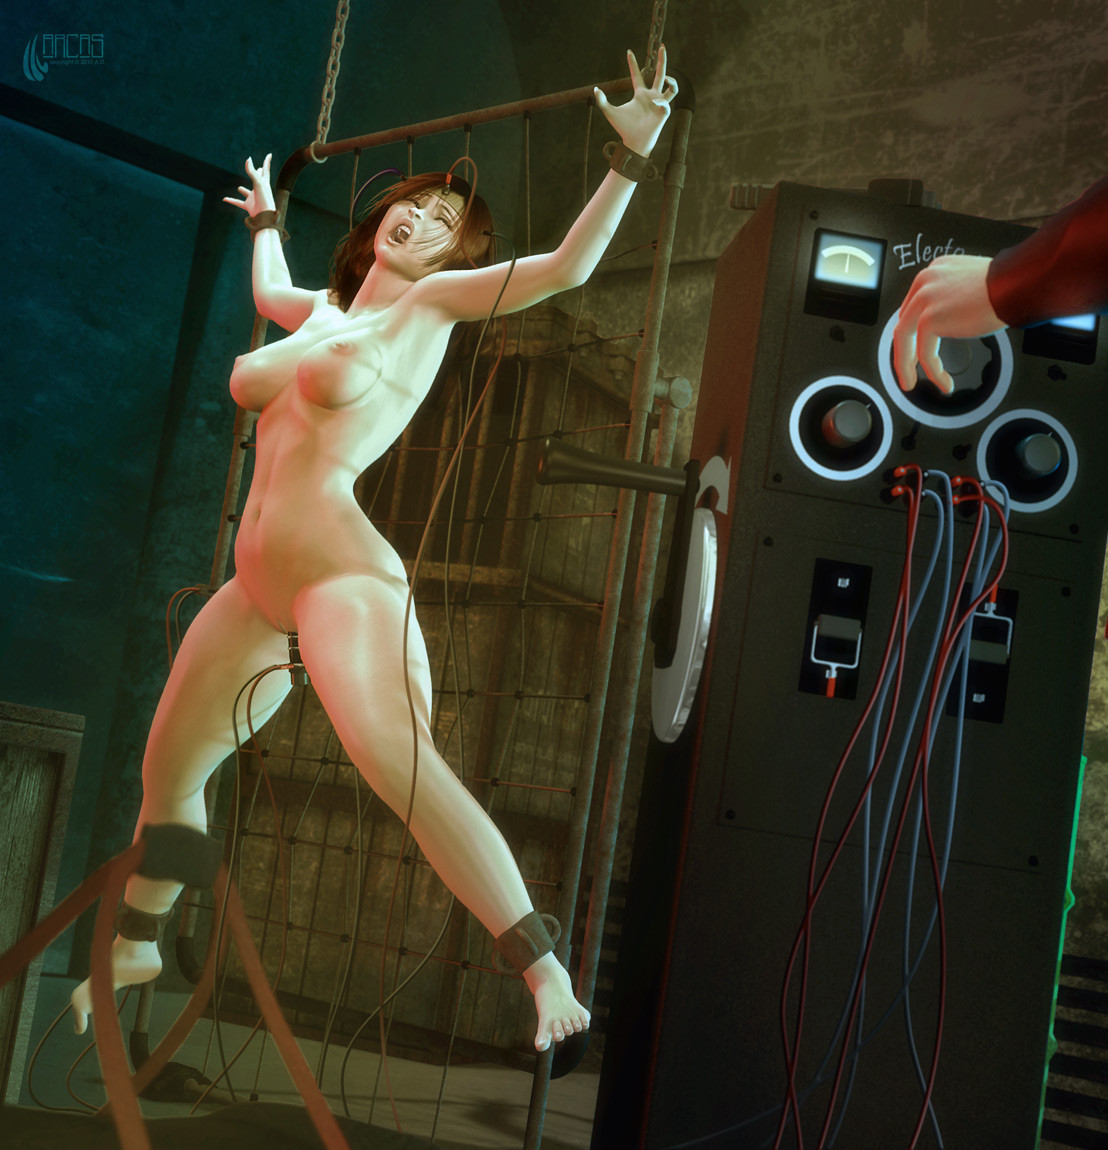 3D Bdsm Movies bdsm drawings electro torture - porn tube